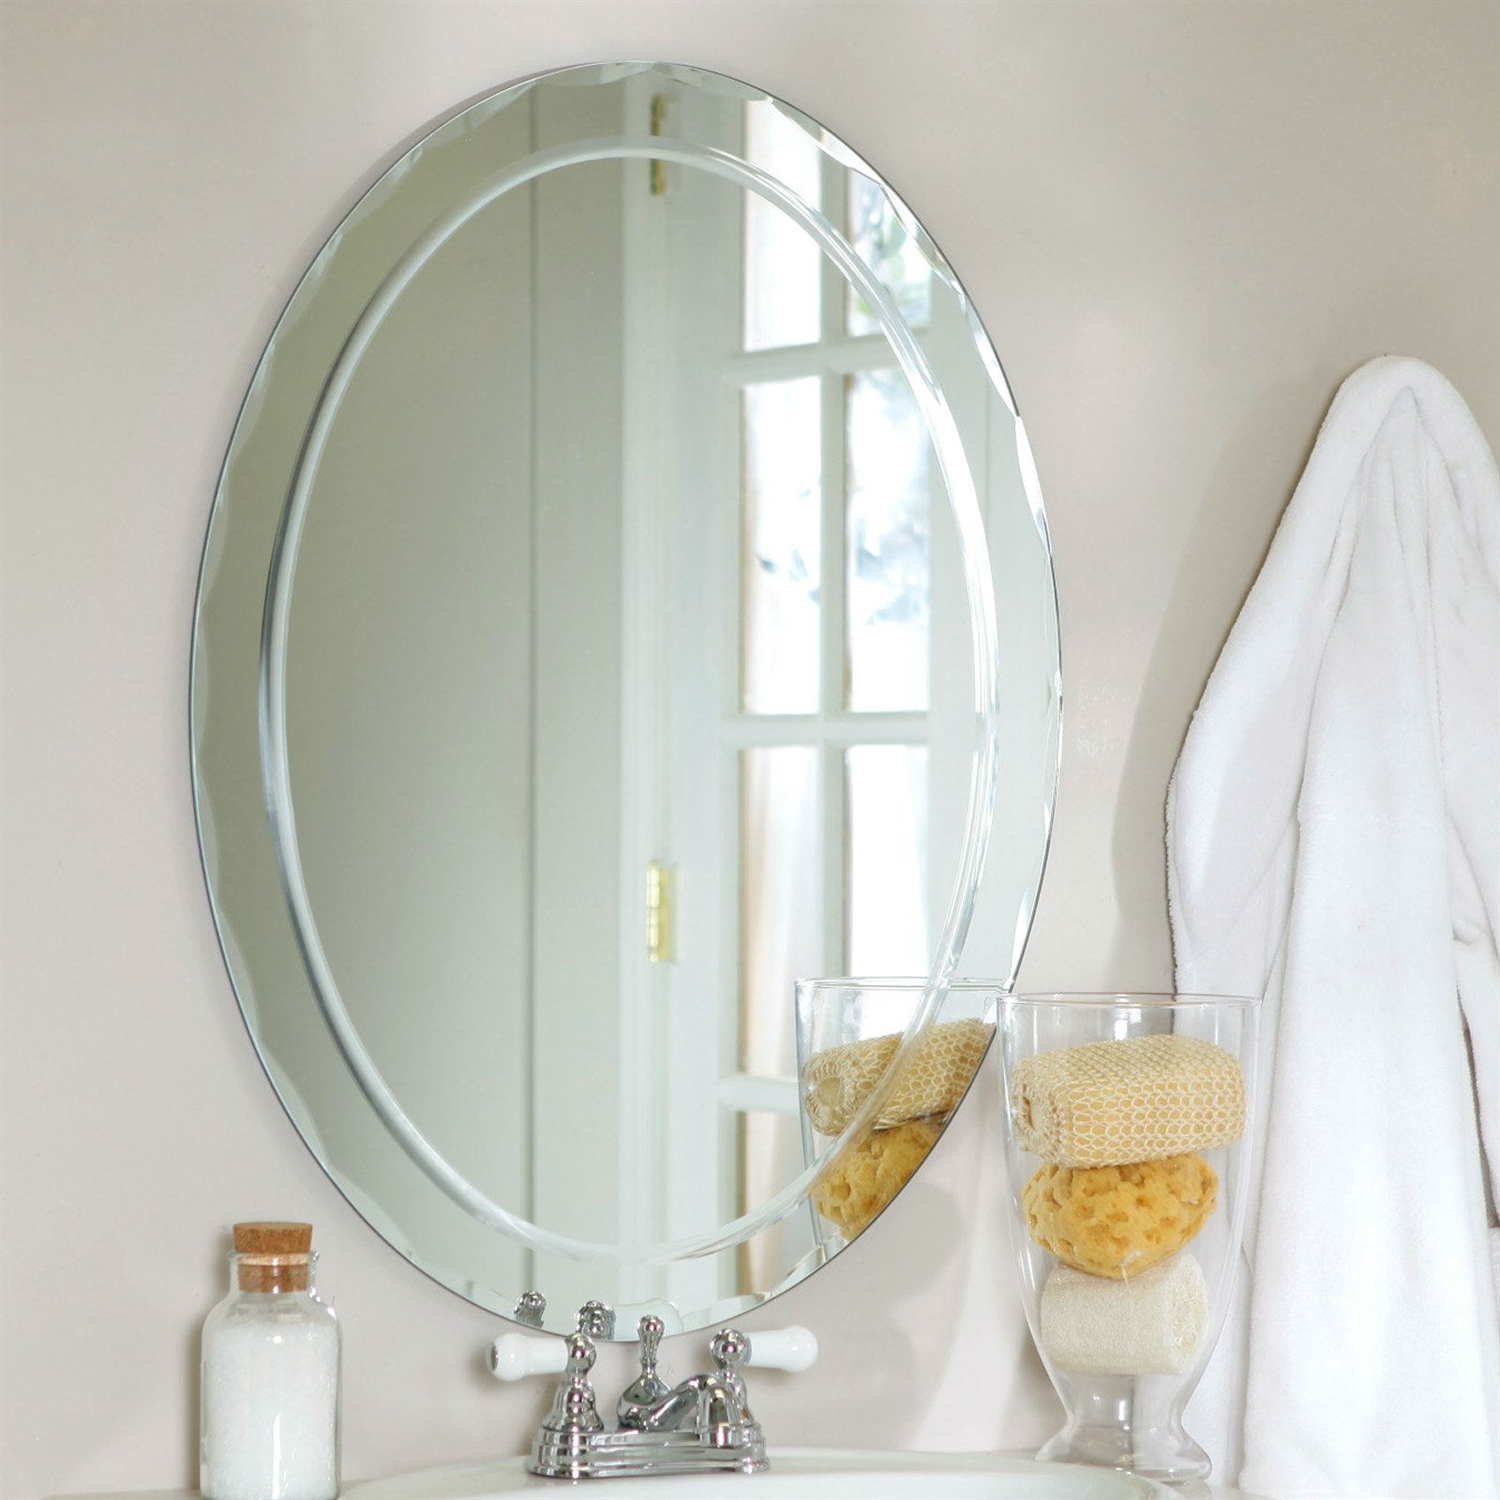 Oval Frame-less Bathroom Vanity Wall Mirror with Beveled ...